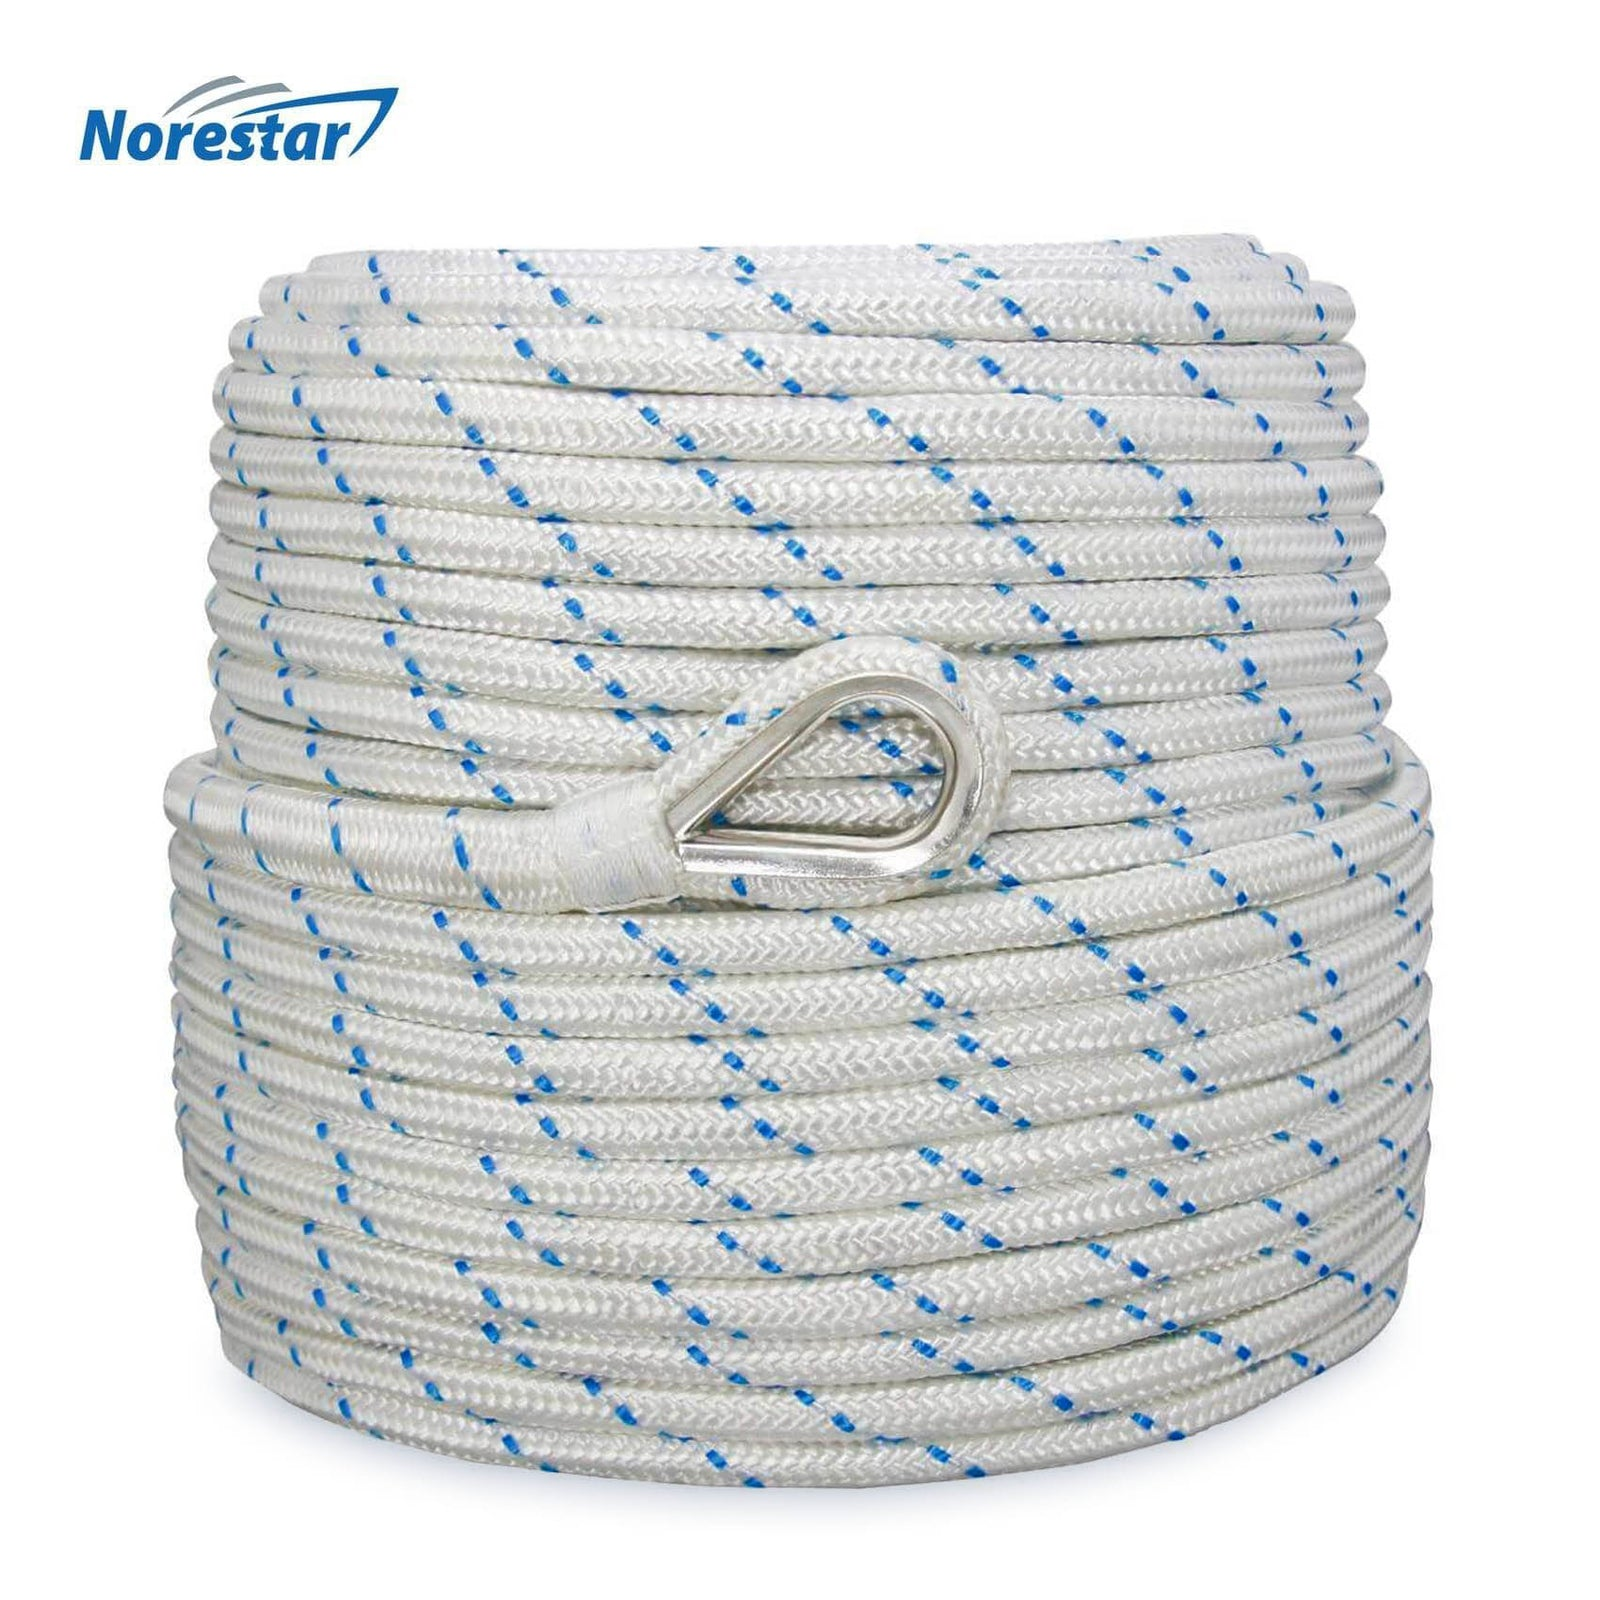 Norestar Double-Braided Nylon Anchor Rope - 3/8""